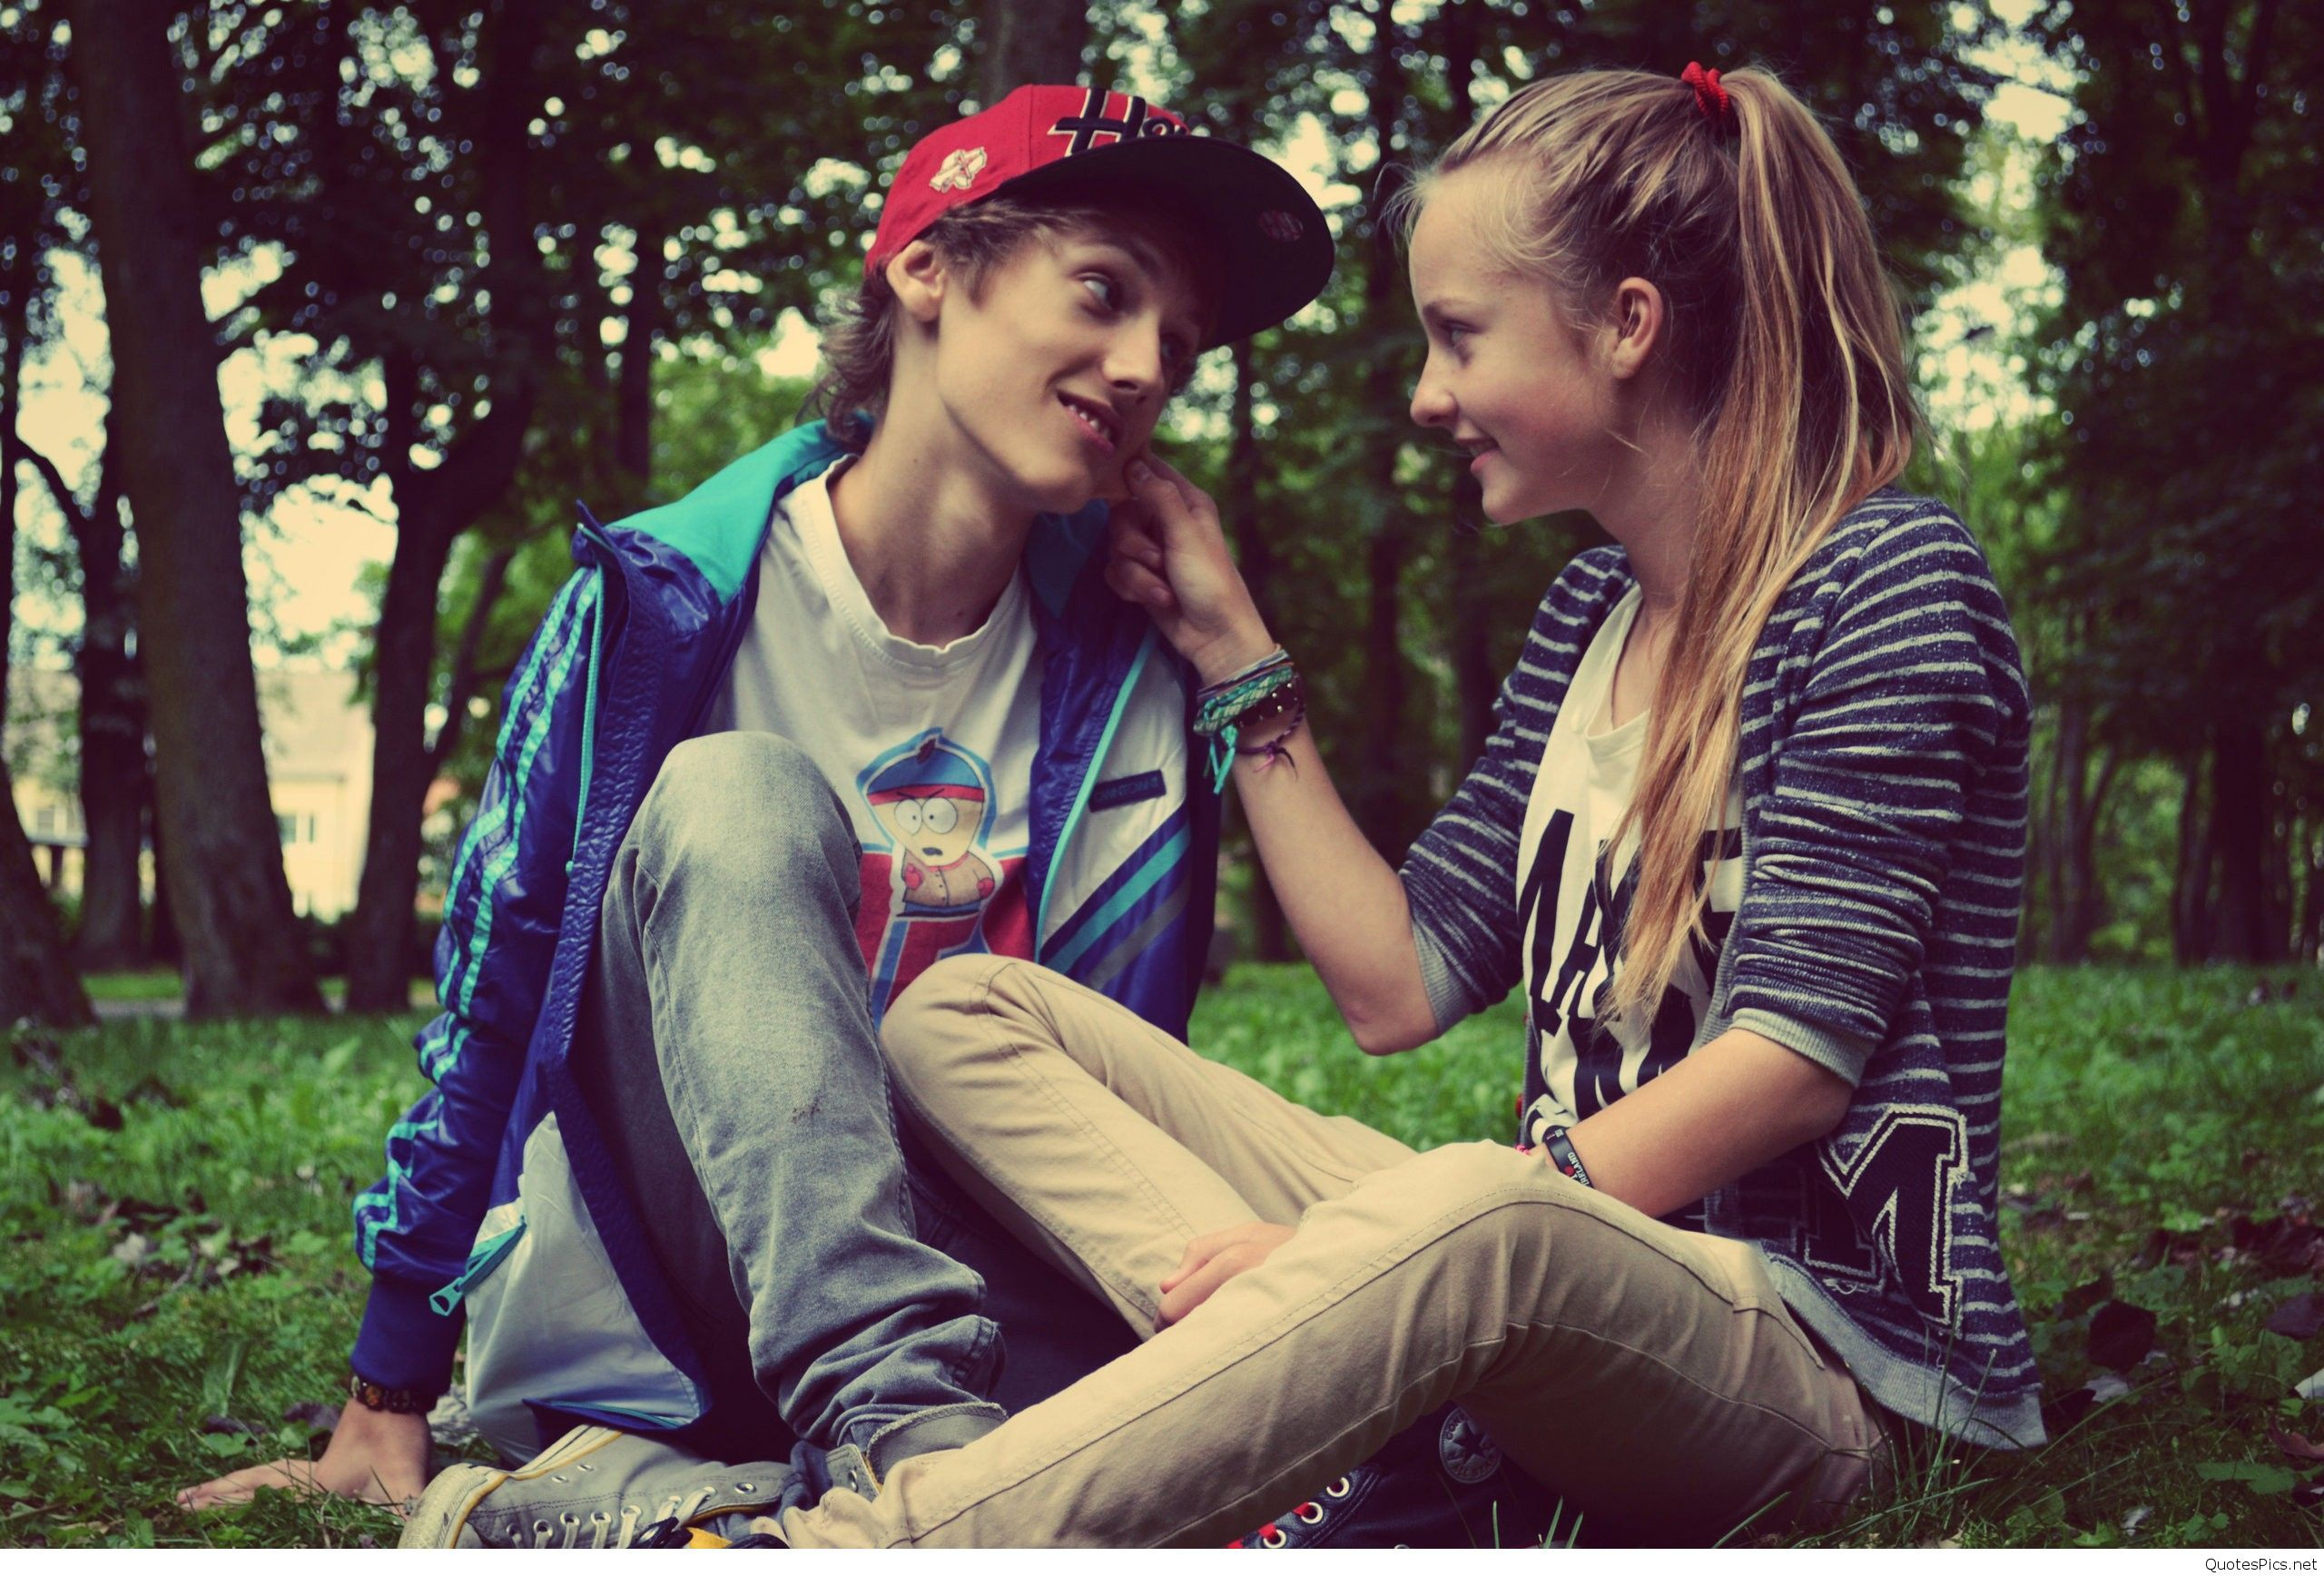 Love Couple Pictures Images And Wallpapers For Facebook Enjoy And